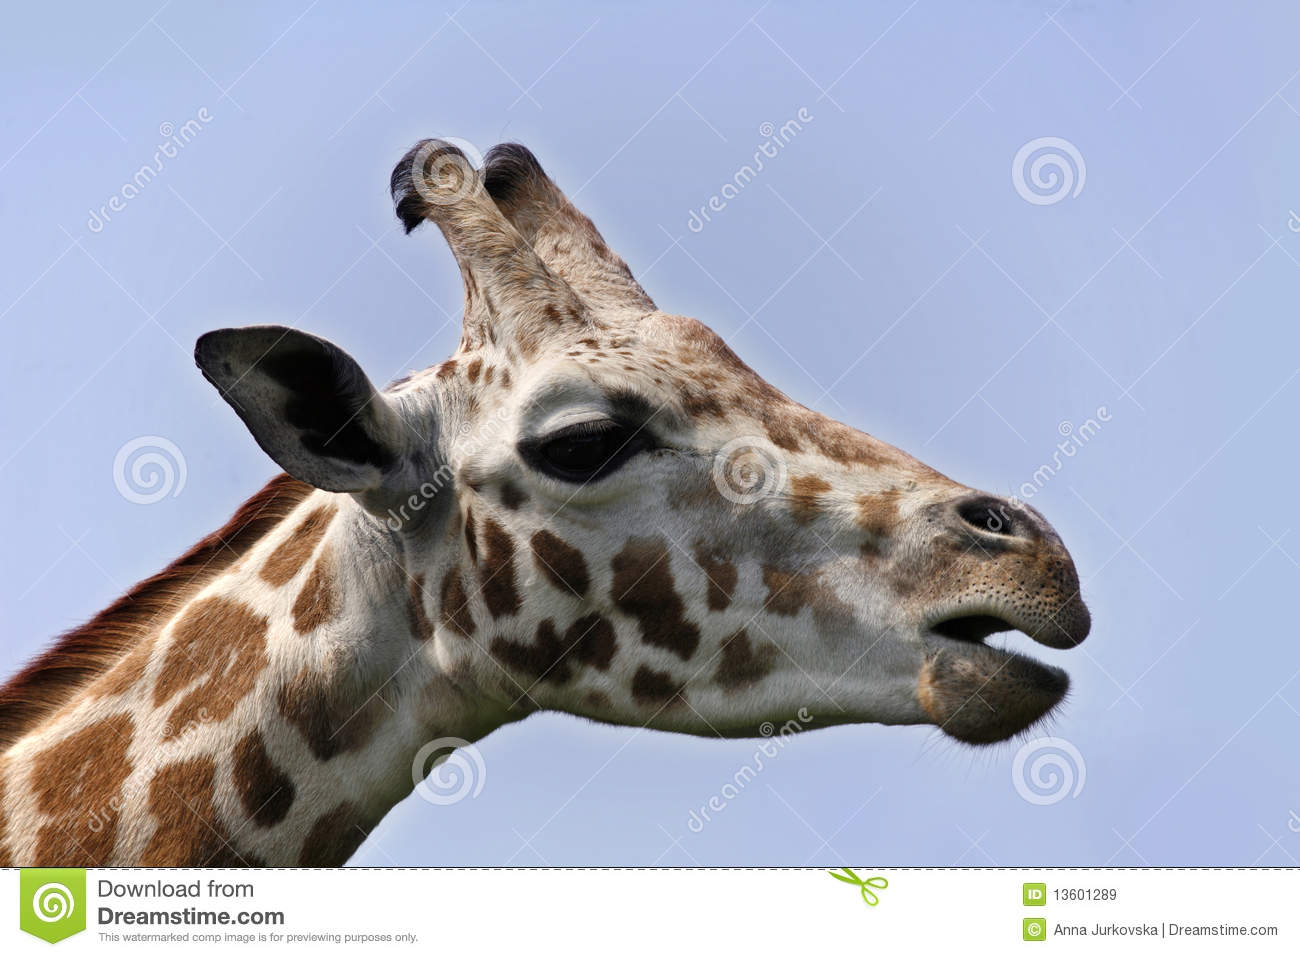 Giraffe head close up - photo#20